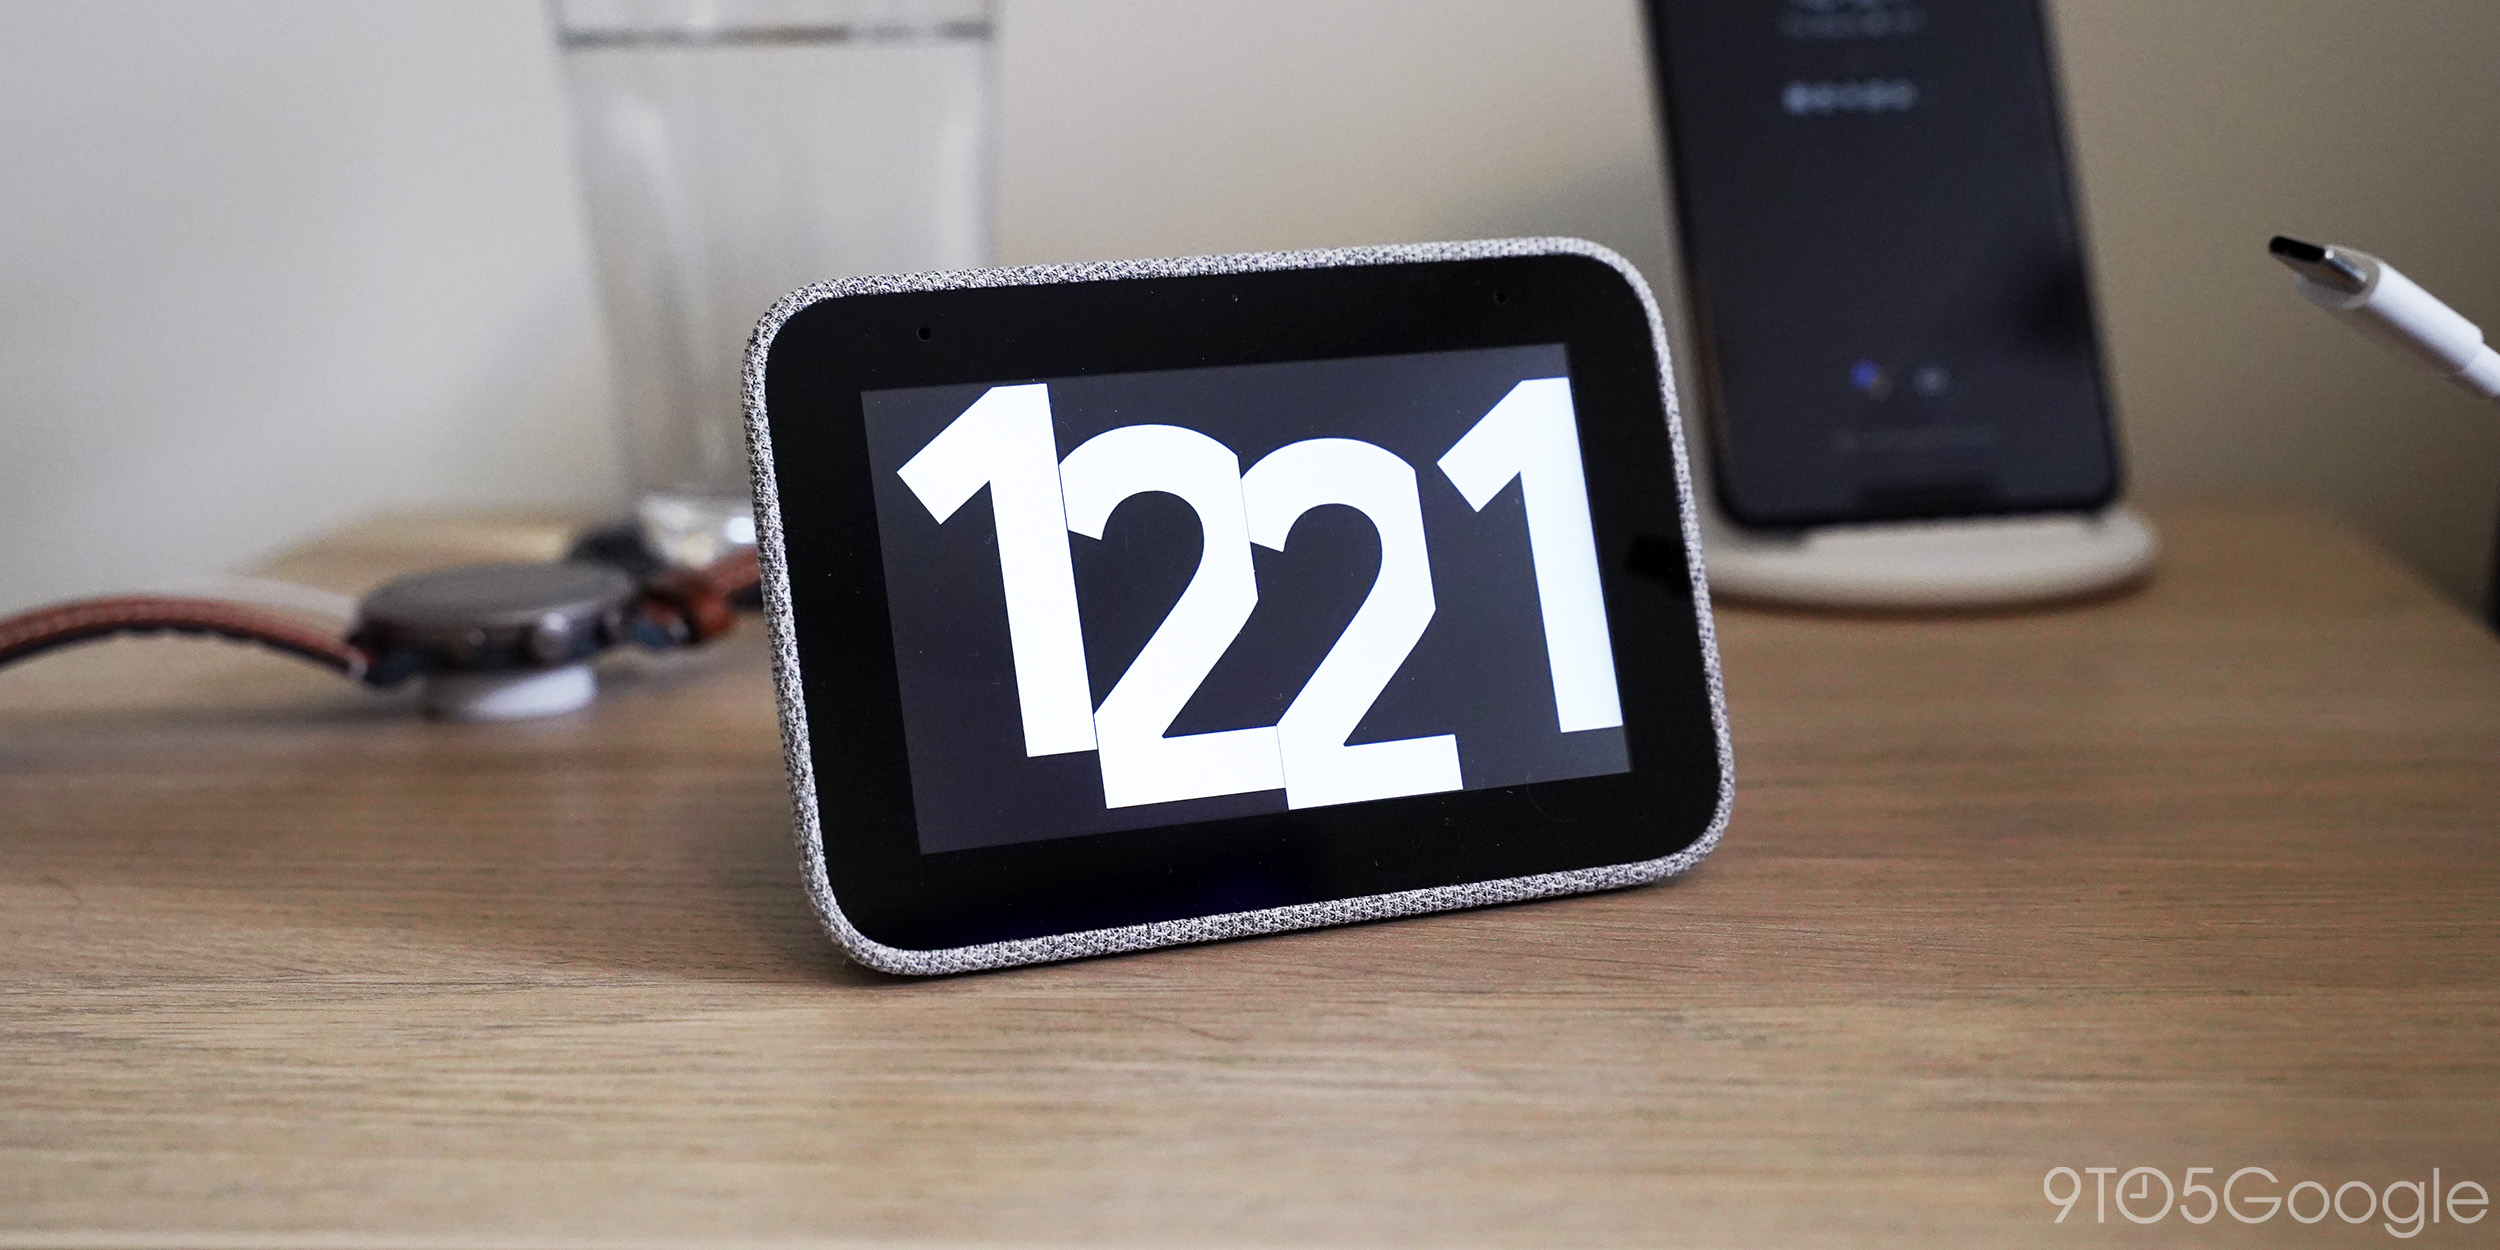 Lenovo Smart Clock will probably be the smallest thing on your nightstand [Gallery]